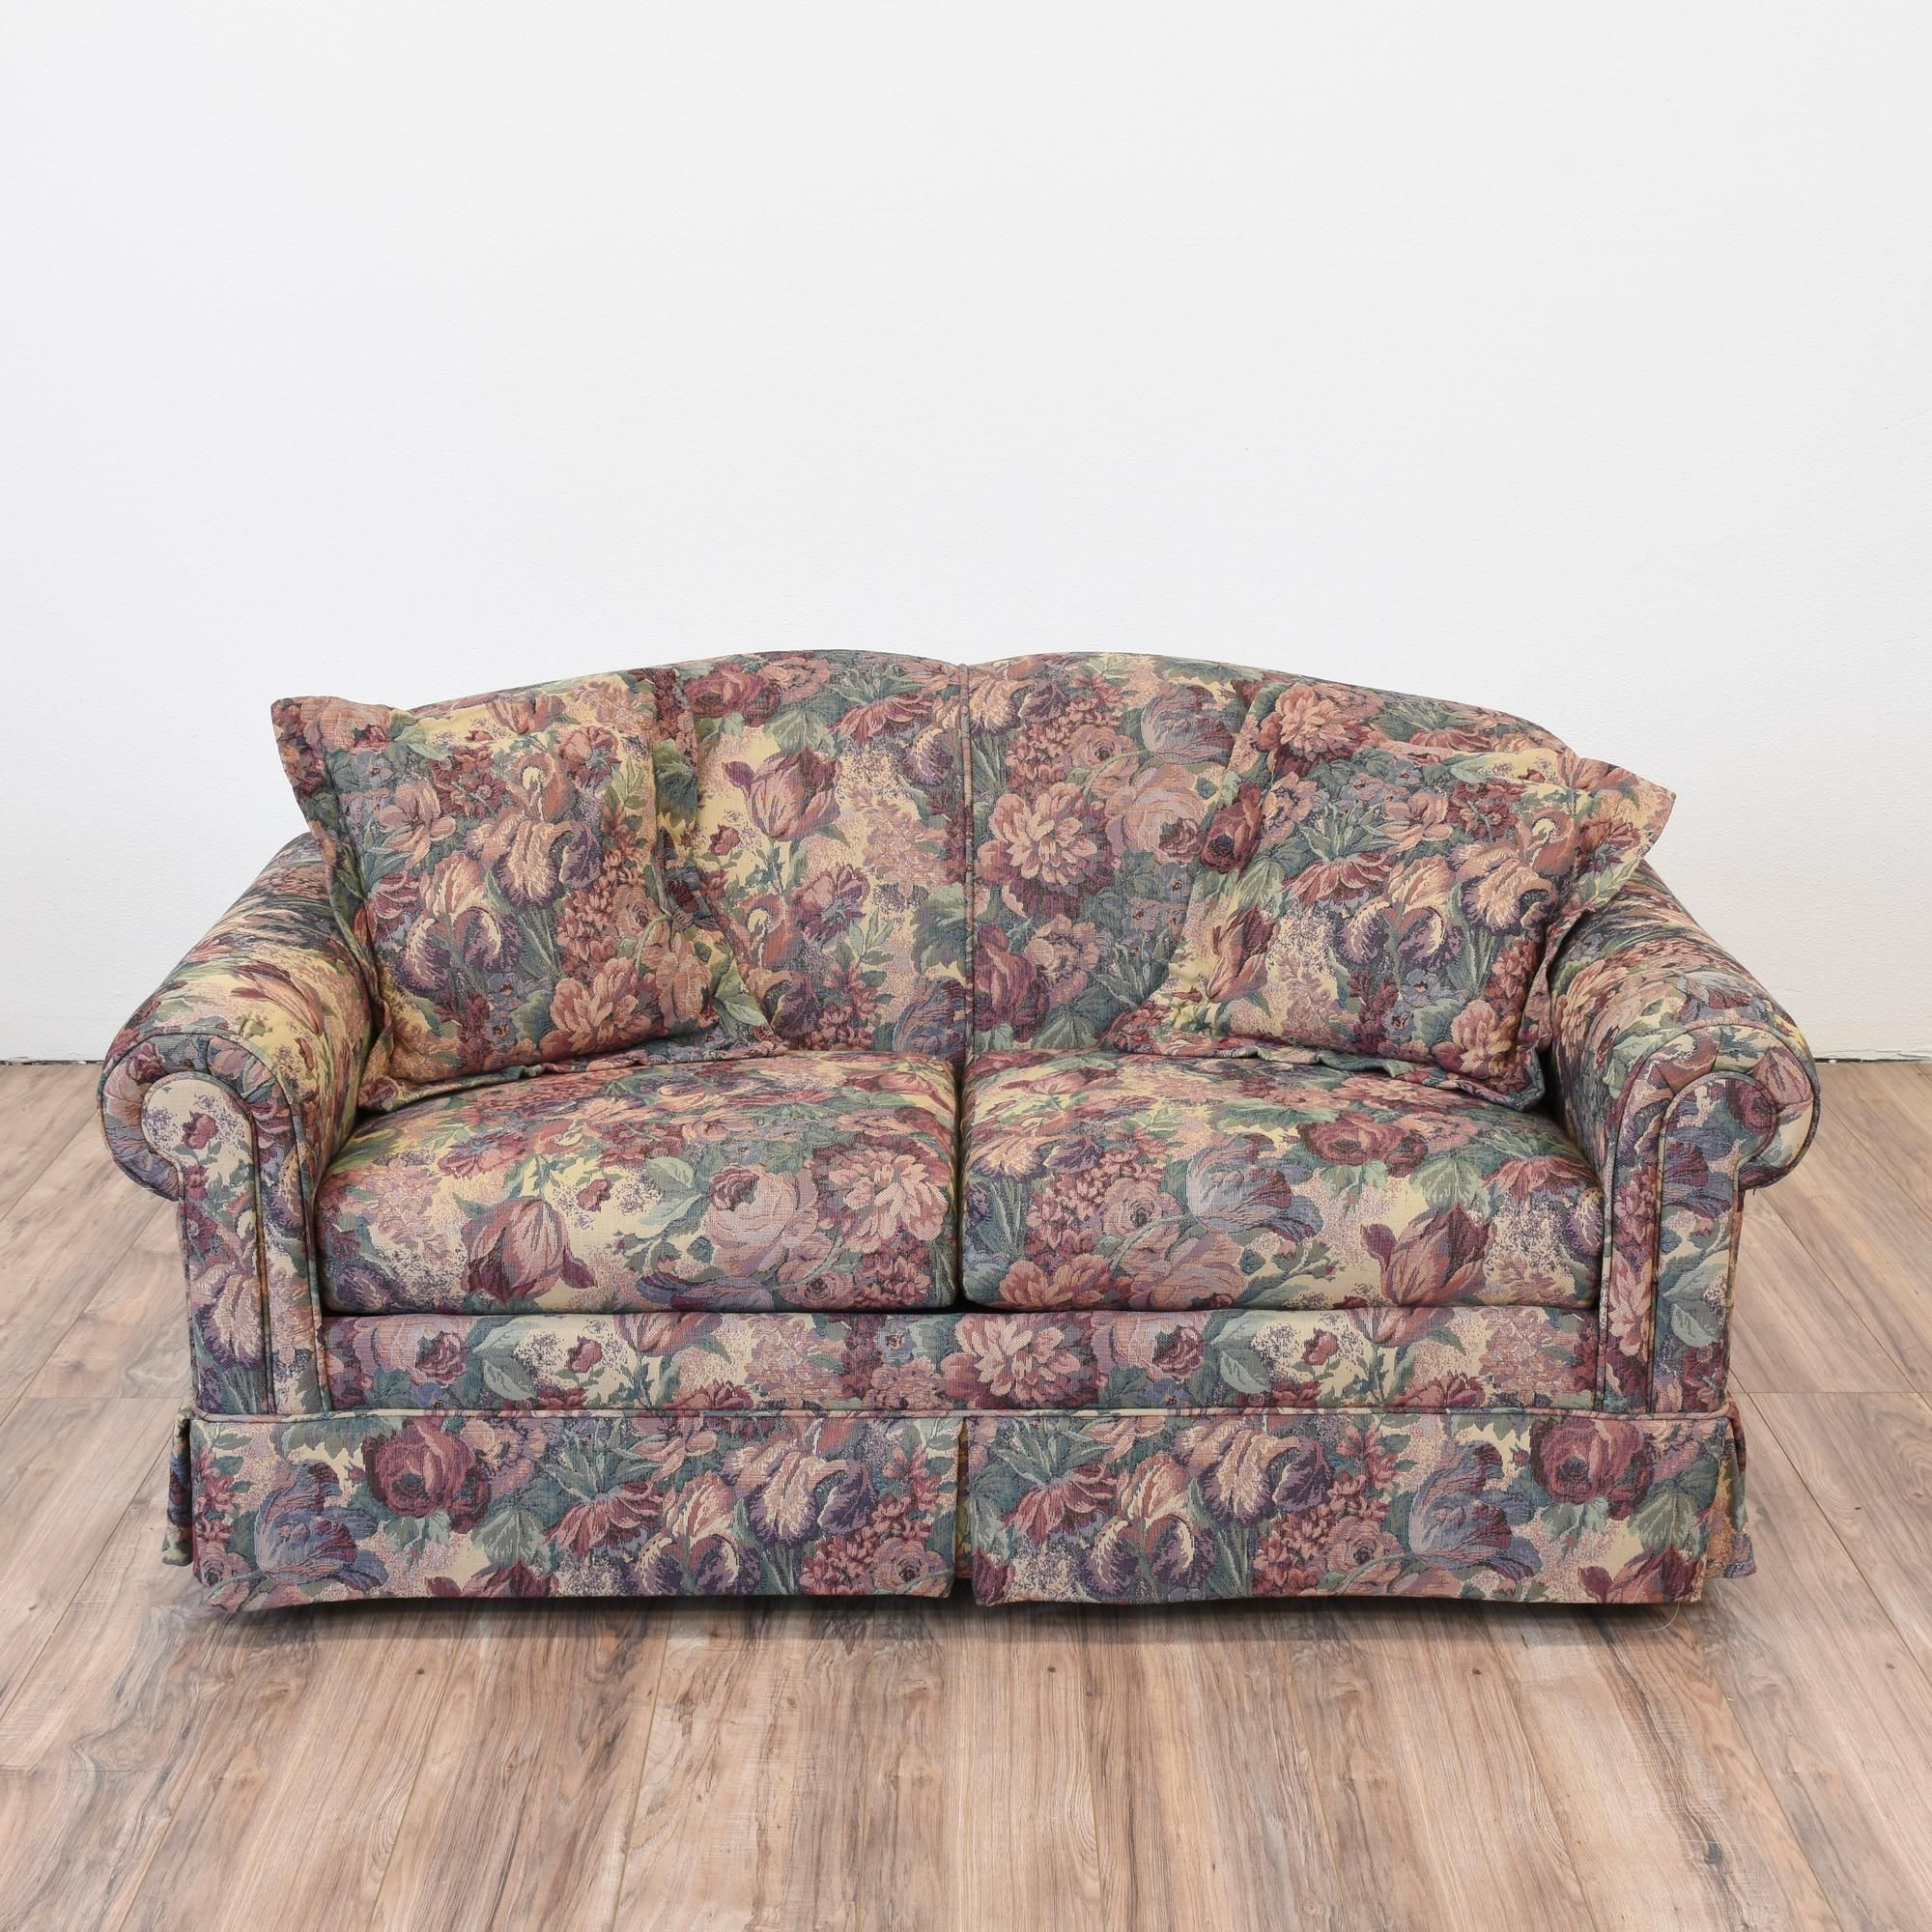 This loveseat is upholstered in a durable floral print fabric in a